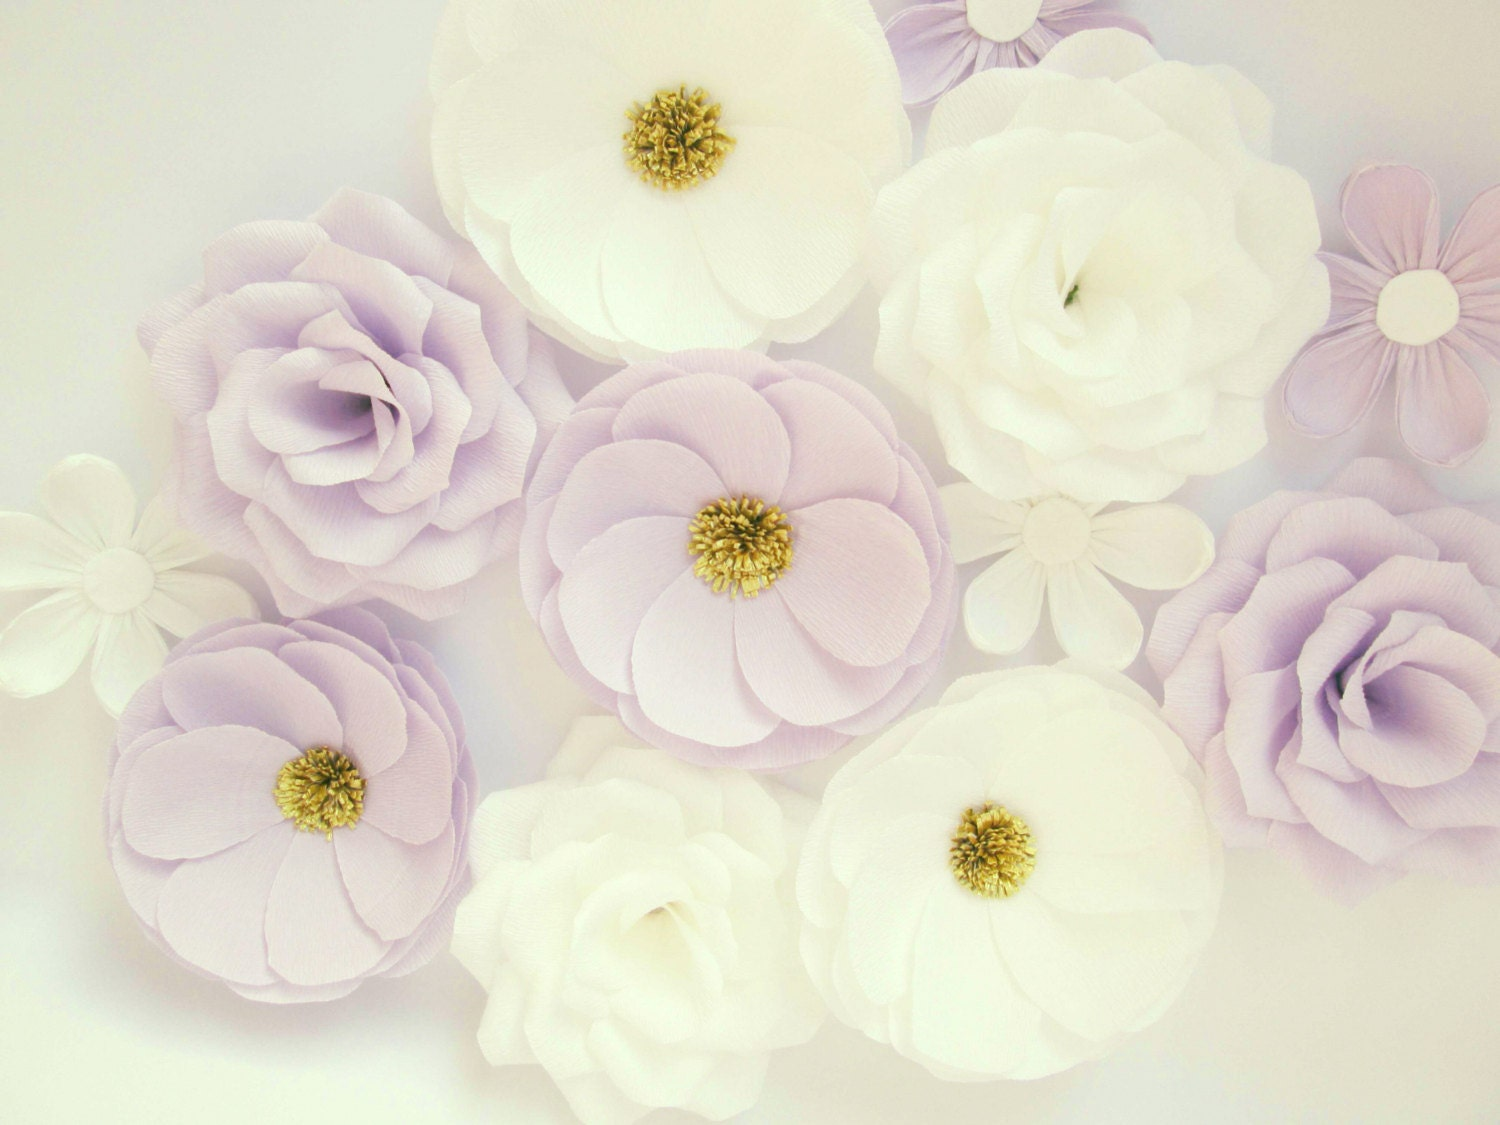 12 Paper Flowers Wall Flowers Arch Flowers Wedding